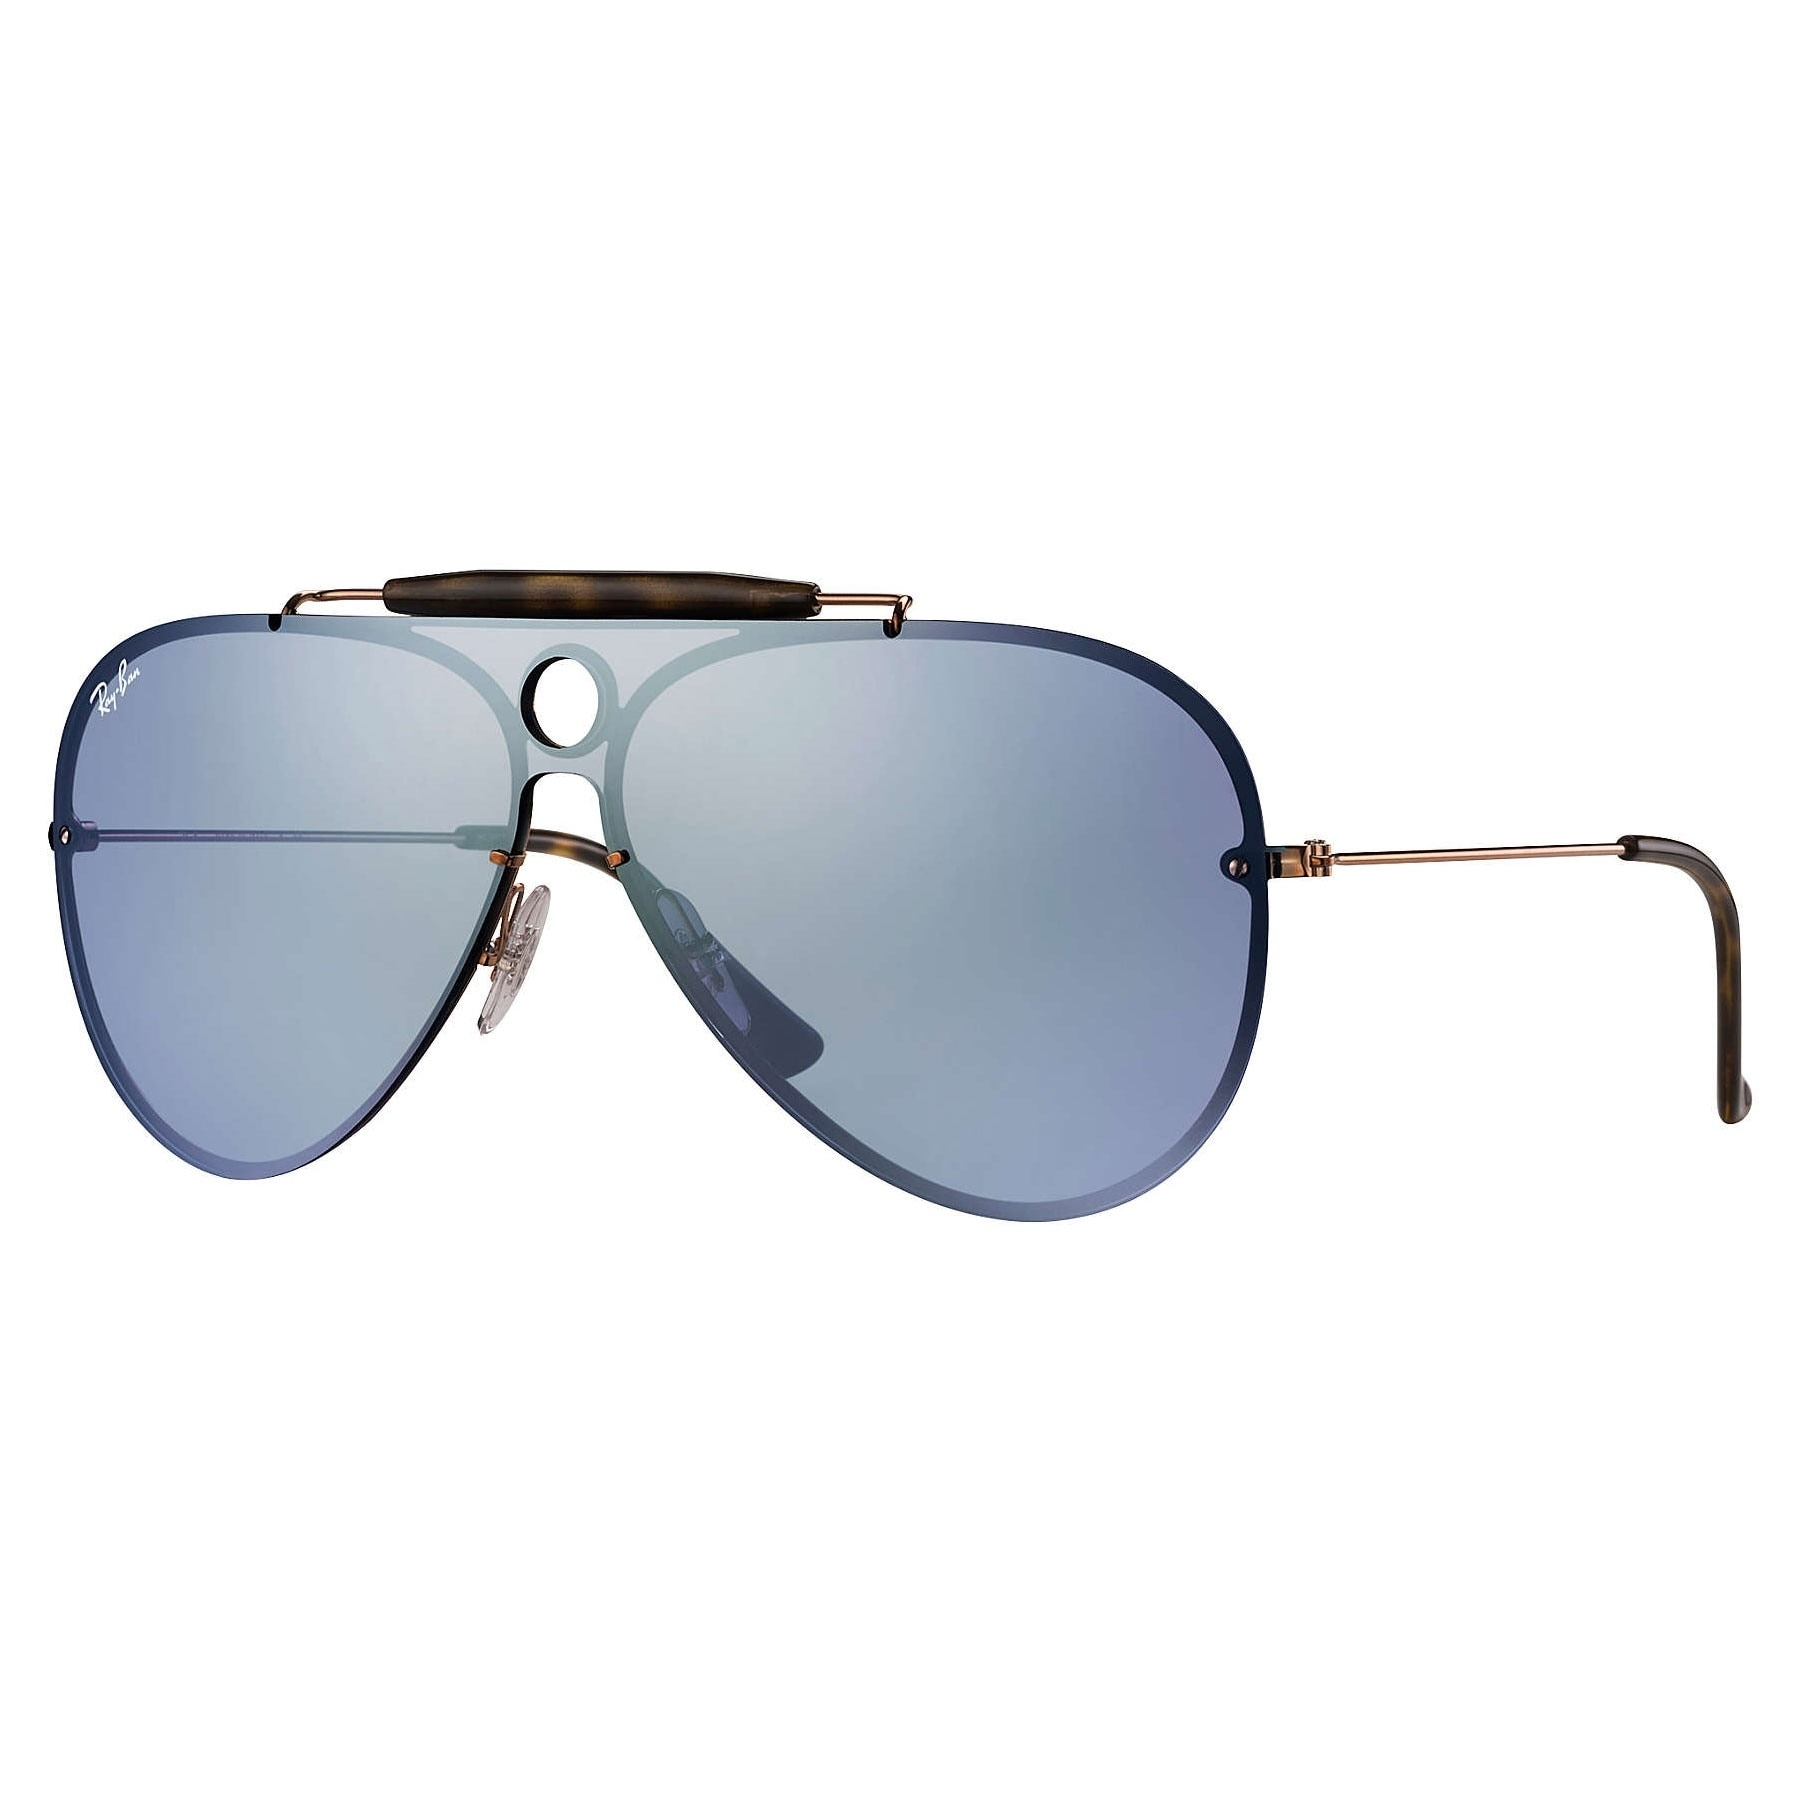 cf974eb4d Shop Ray-Ban RB3581N Blaze Shooter Sunglasses Bronze & Copper/ Violet  Mirror 32mm - Blue - Free Shipping Today - Overstock - 20457199